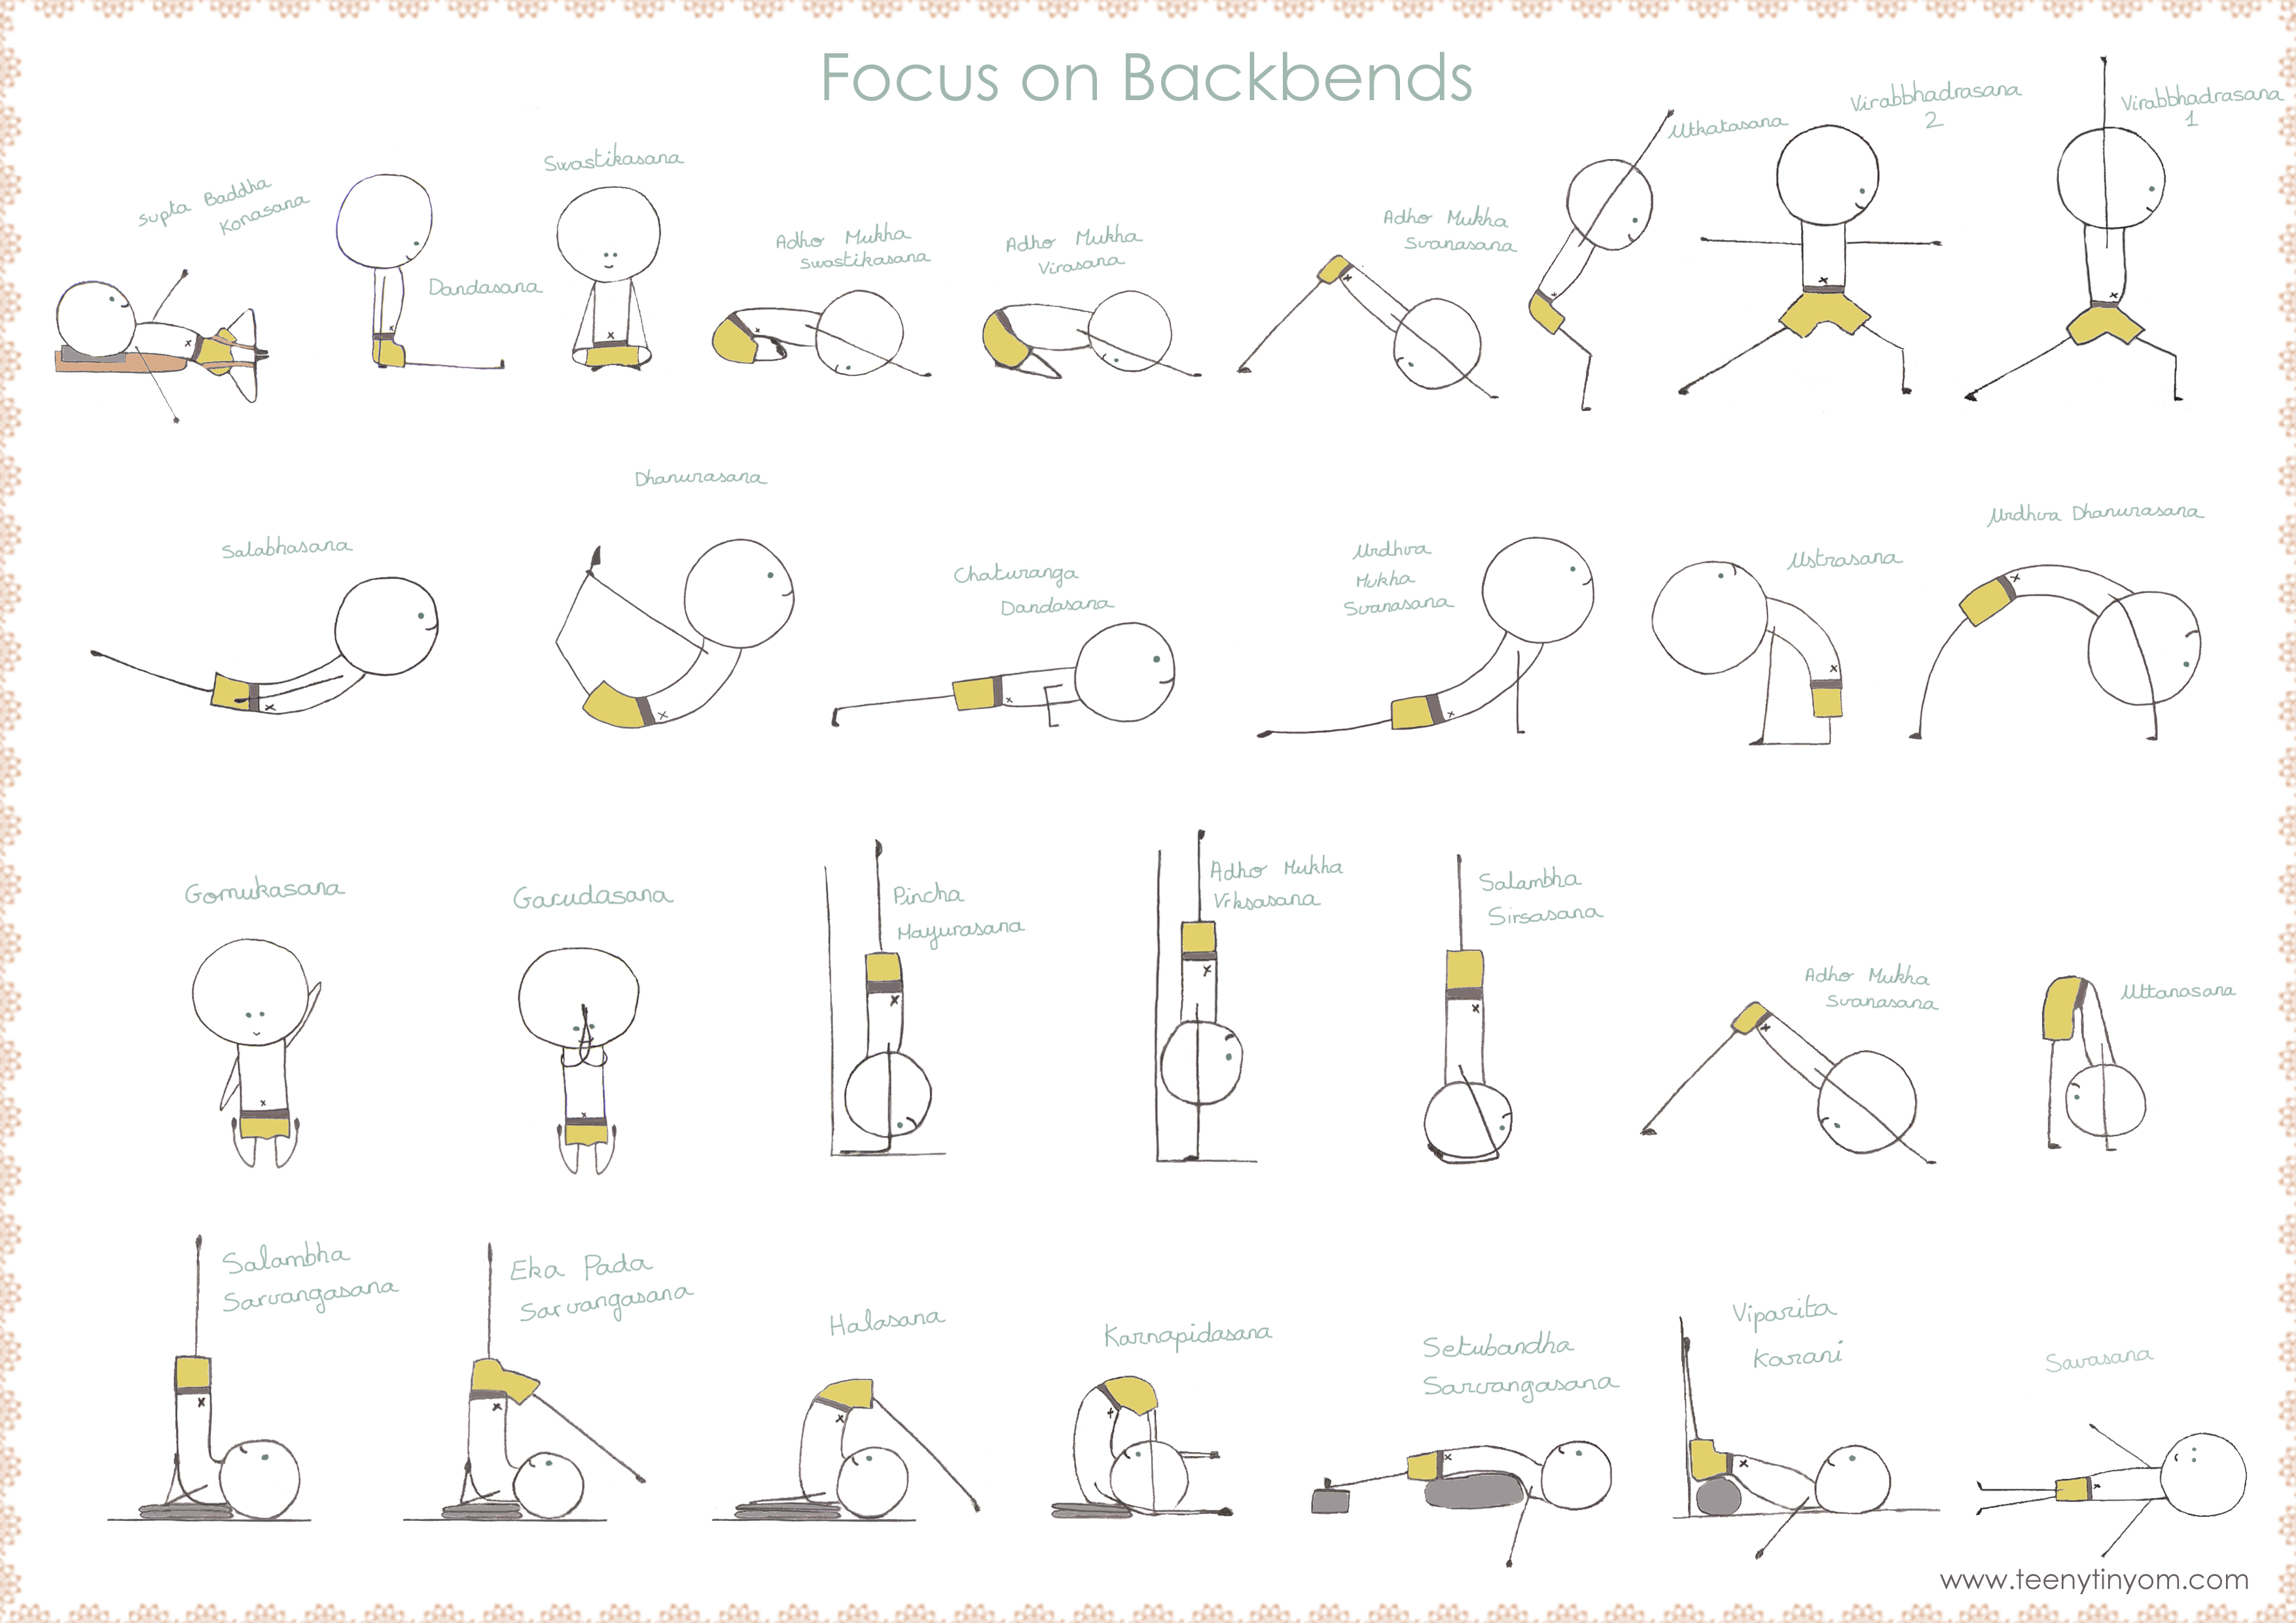 chair yoga sequences thinking blues clues song focus on and pinterest